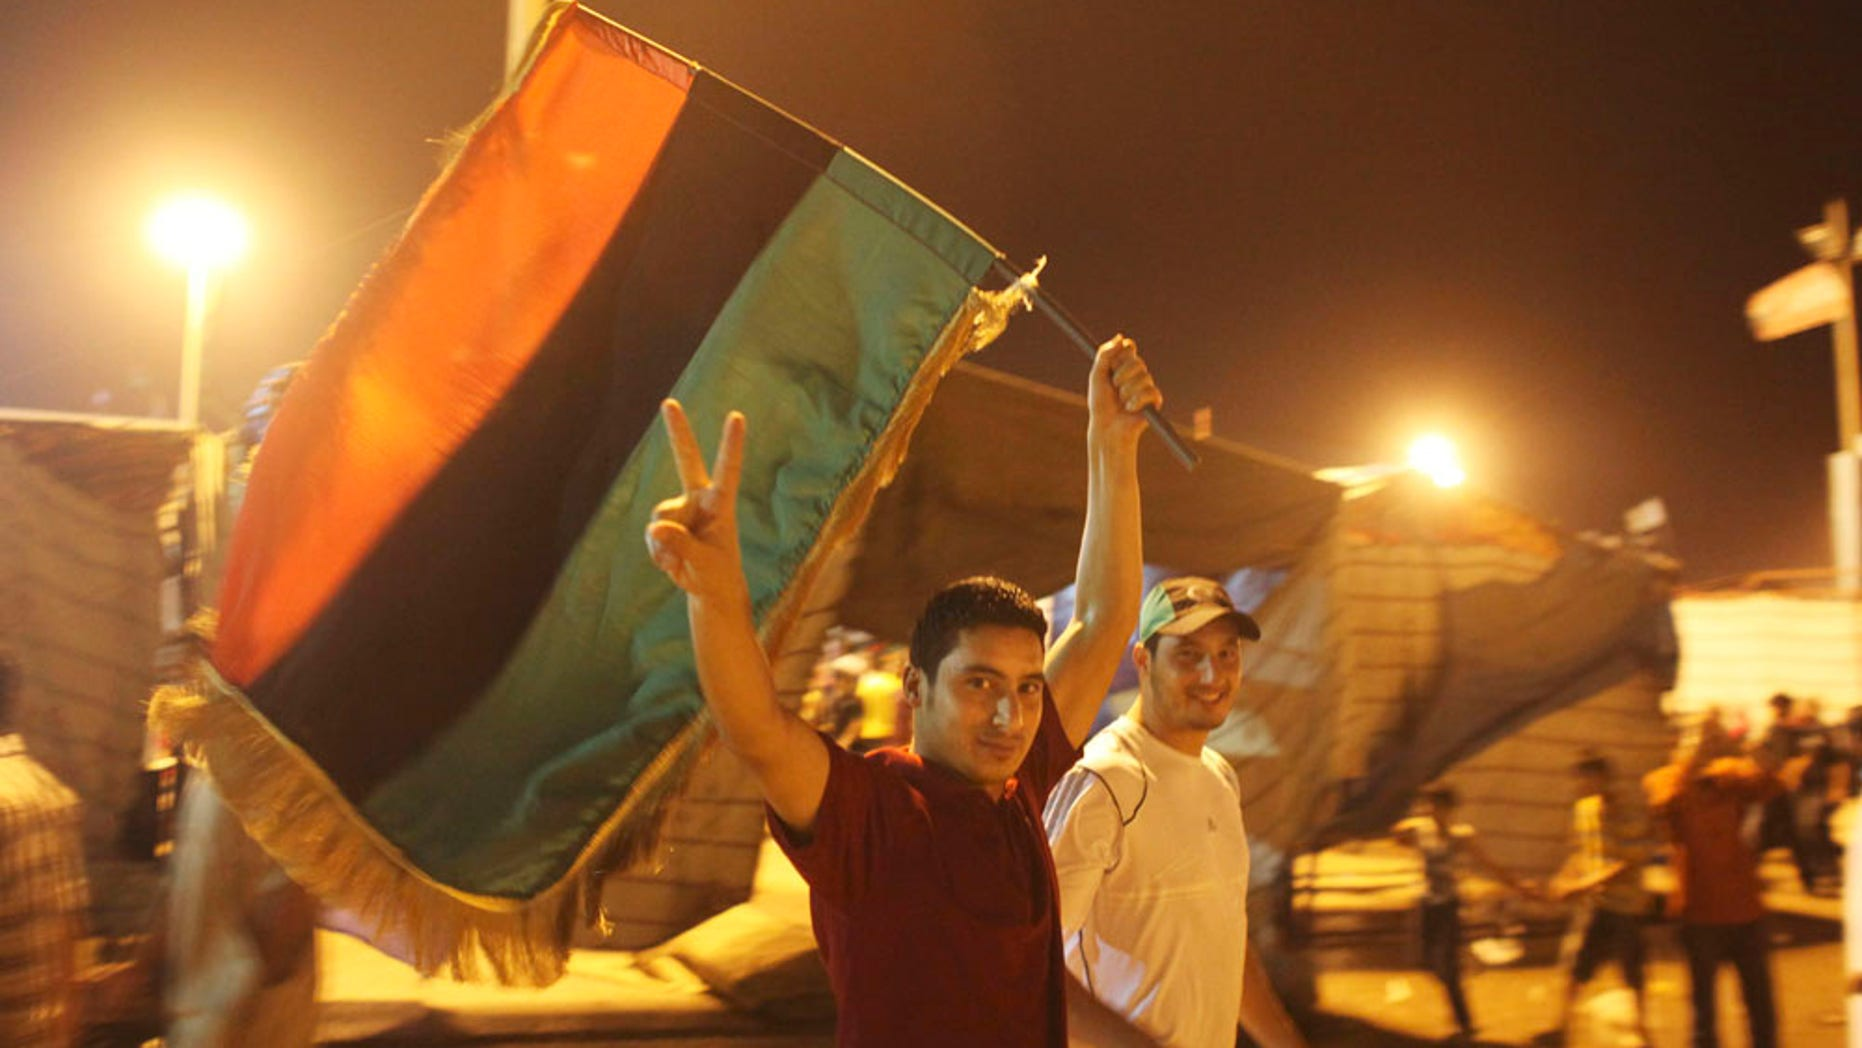 Aug. 22: A man flashes the victory sign as he celebrates the capture in Tripoli of Qaddafi's son and one-time heir apparent, Seif al-Islam, at the rebel-held town of Benghazi, Libya. It turned out that Seif al-Islam was not in custody and appeared Monday night in Tripoli.